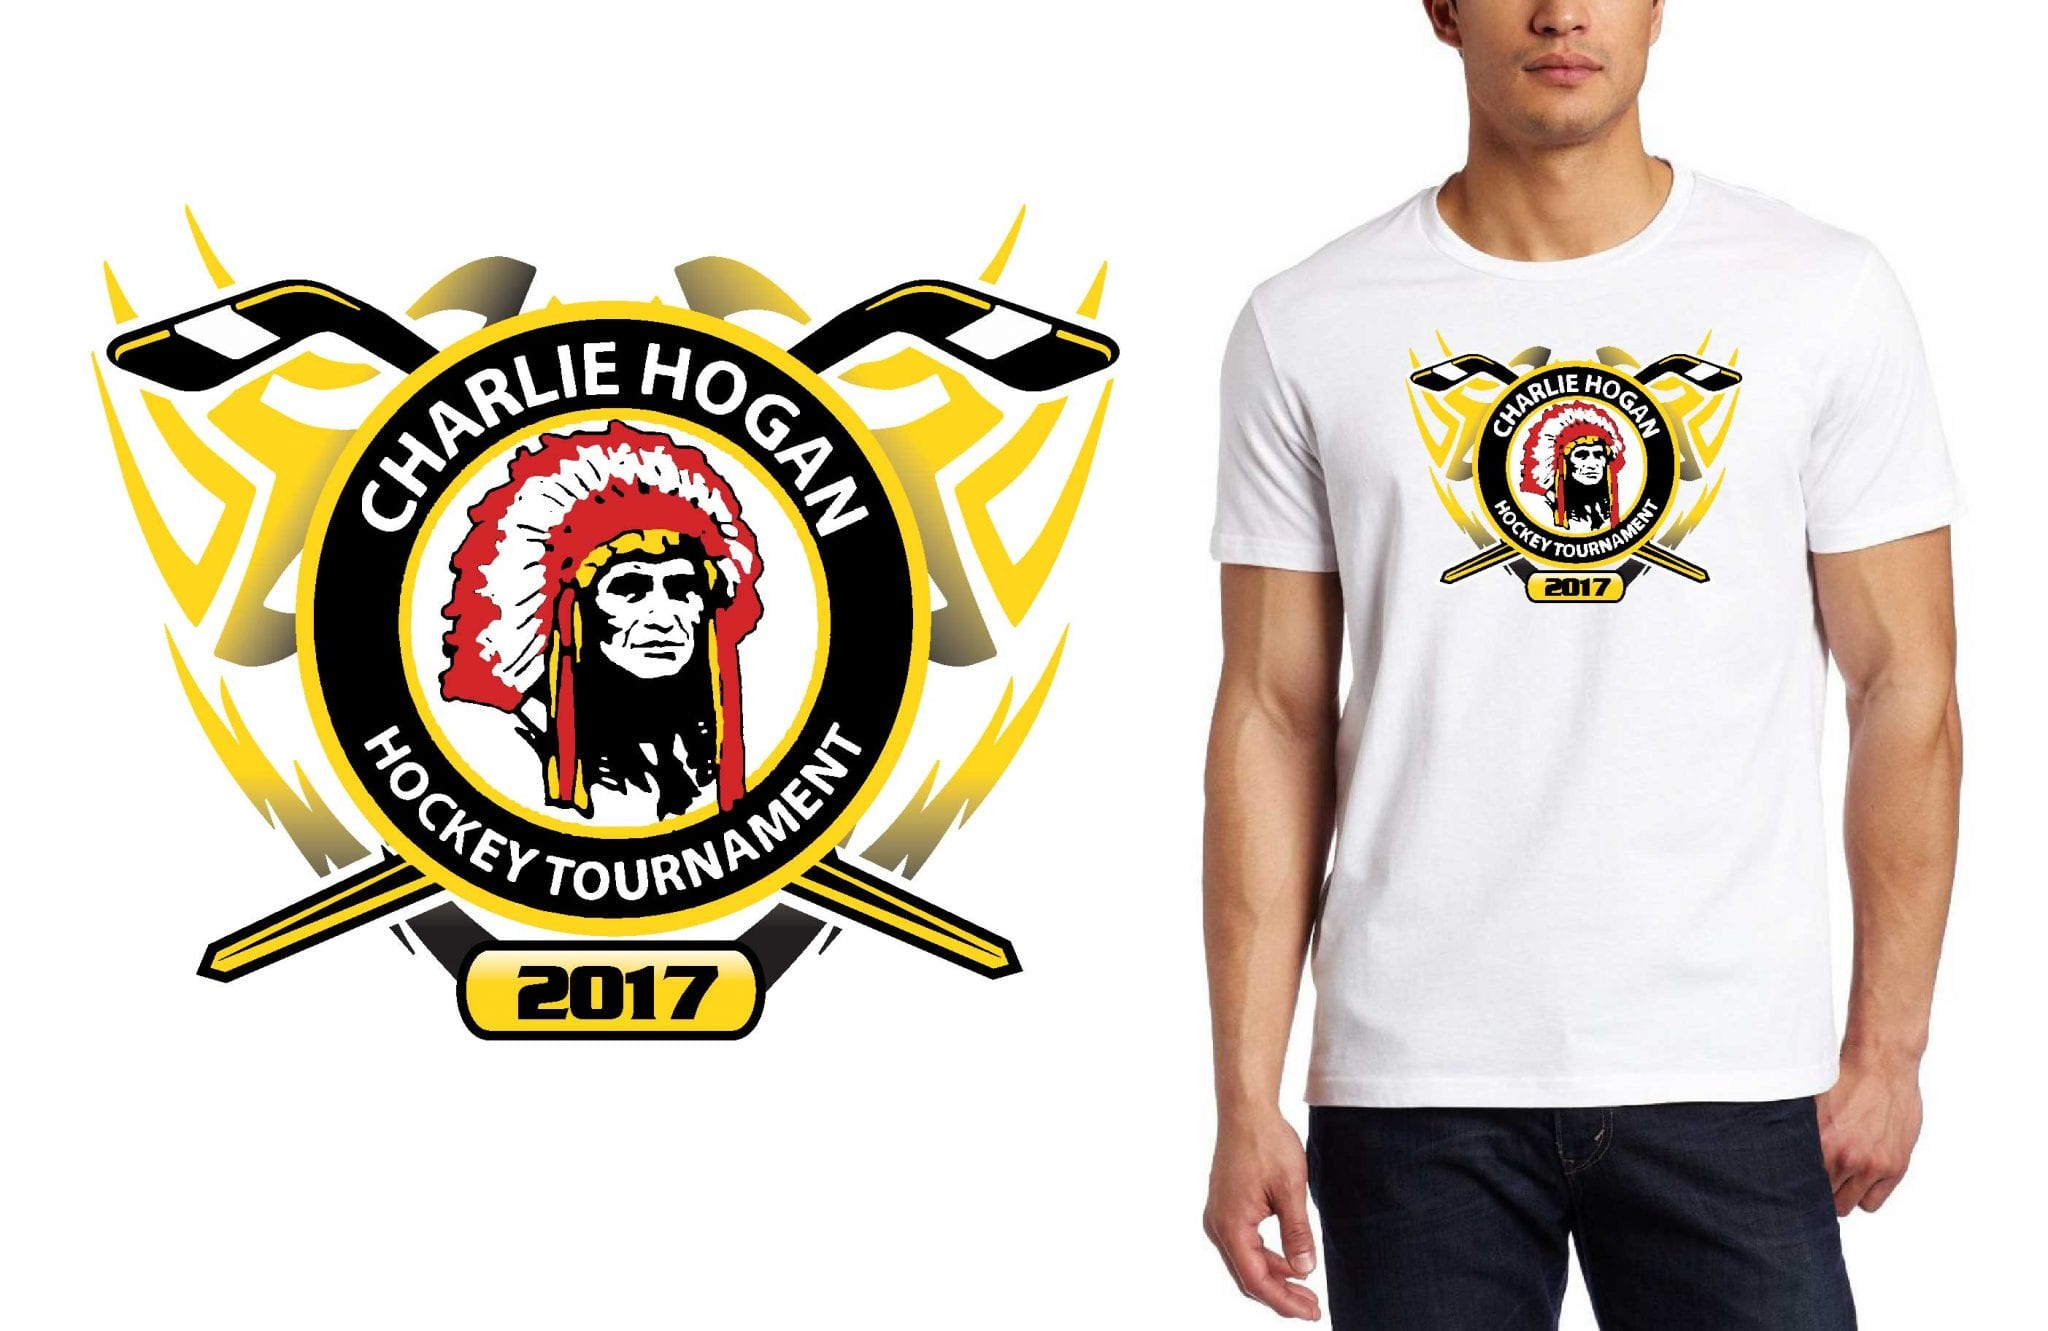 HOCKEY LOGO for Charlie-Hogan-Memorial-Tournament-younger-players T-SHIRT UrArtStudio